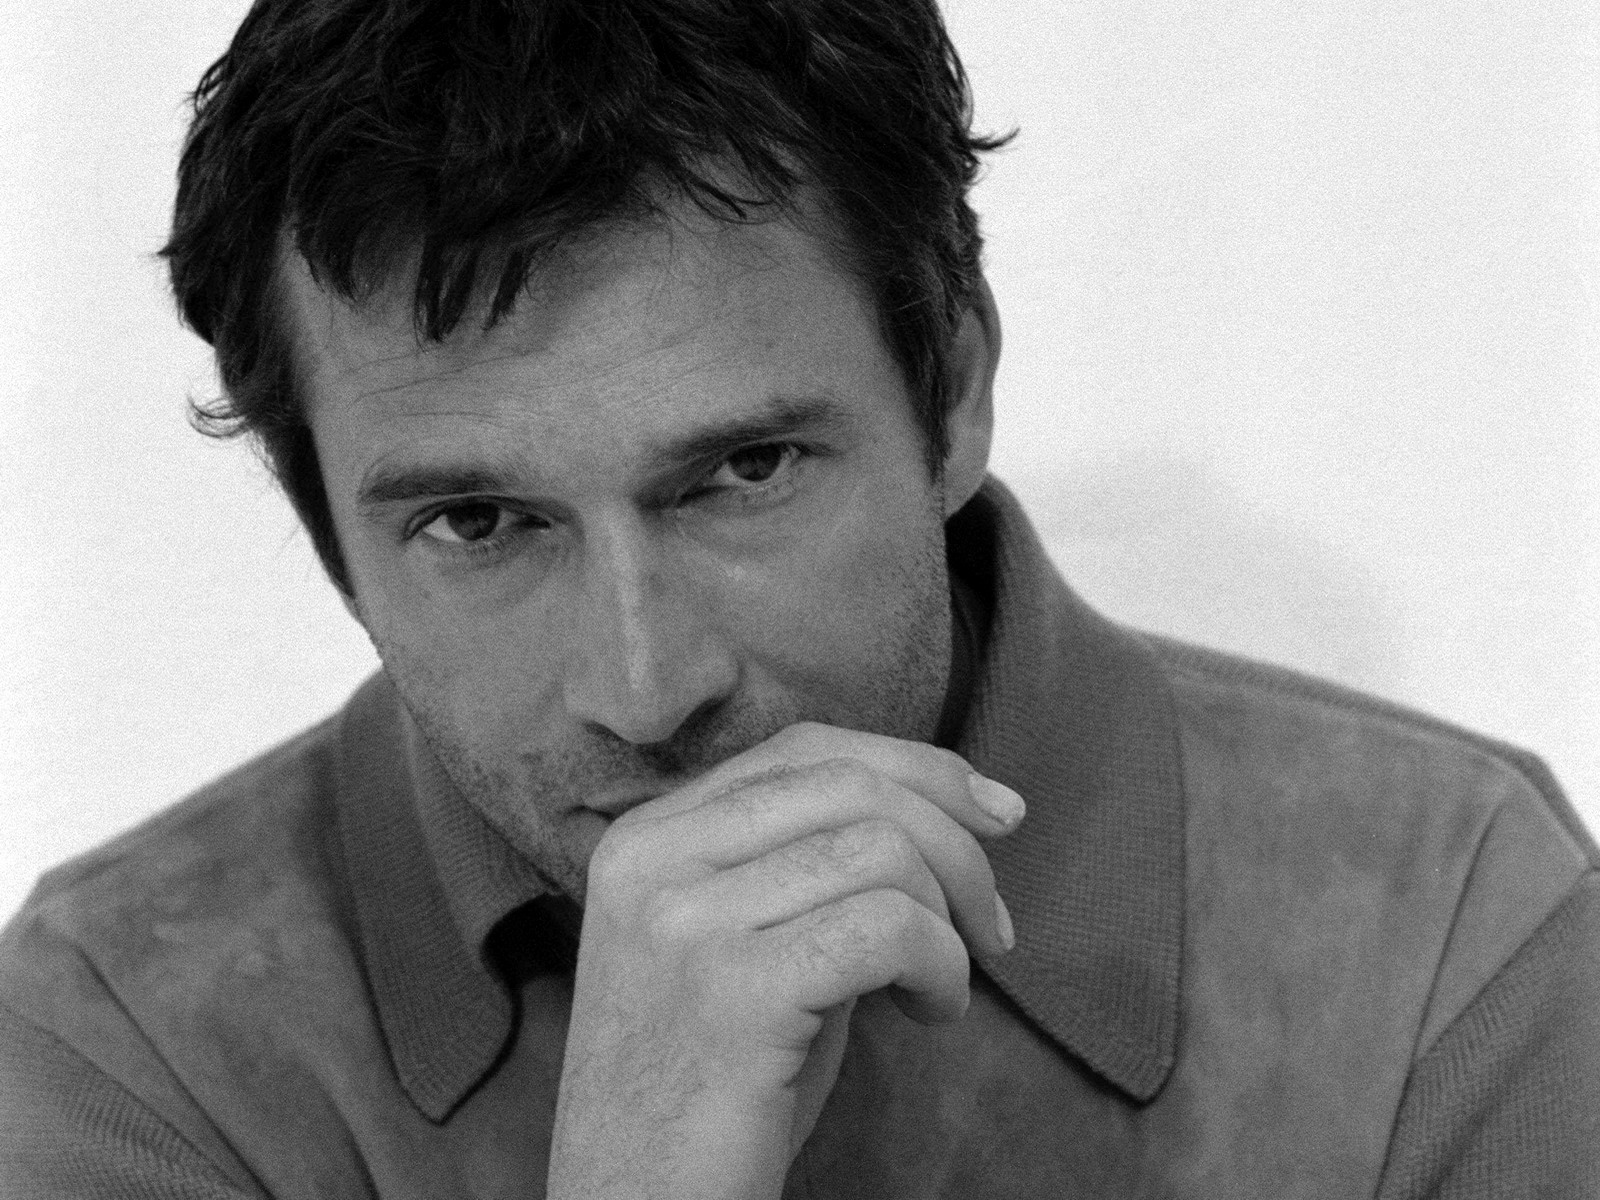 james purefoy heightjames purefoy gif, james purefoy thomas jane, james purefoy interview, james purefoy kevin bacon, james purefoy and eva green, james purefoy tv series, james purefoy bond, james purefoy looks like, james purefoy wiki, james purefoy movie, james purefoy christina hendricks, james purefoy twitter, james purefoy height, james purefoy autograph, james purefoy and jessica adams, james purefoy the following, james purefoy game of thrones, james purefoy instagram, james purefoy films, james purefoy pictures